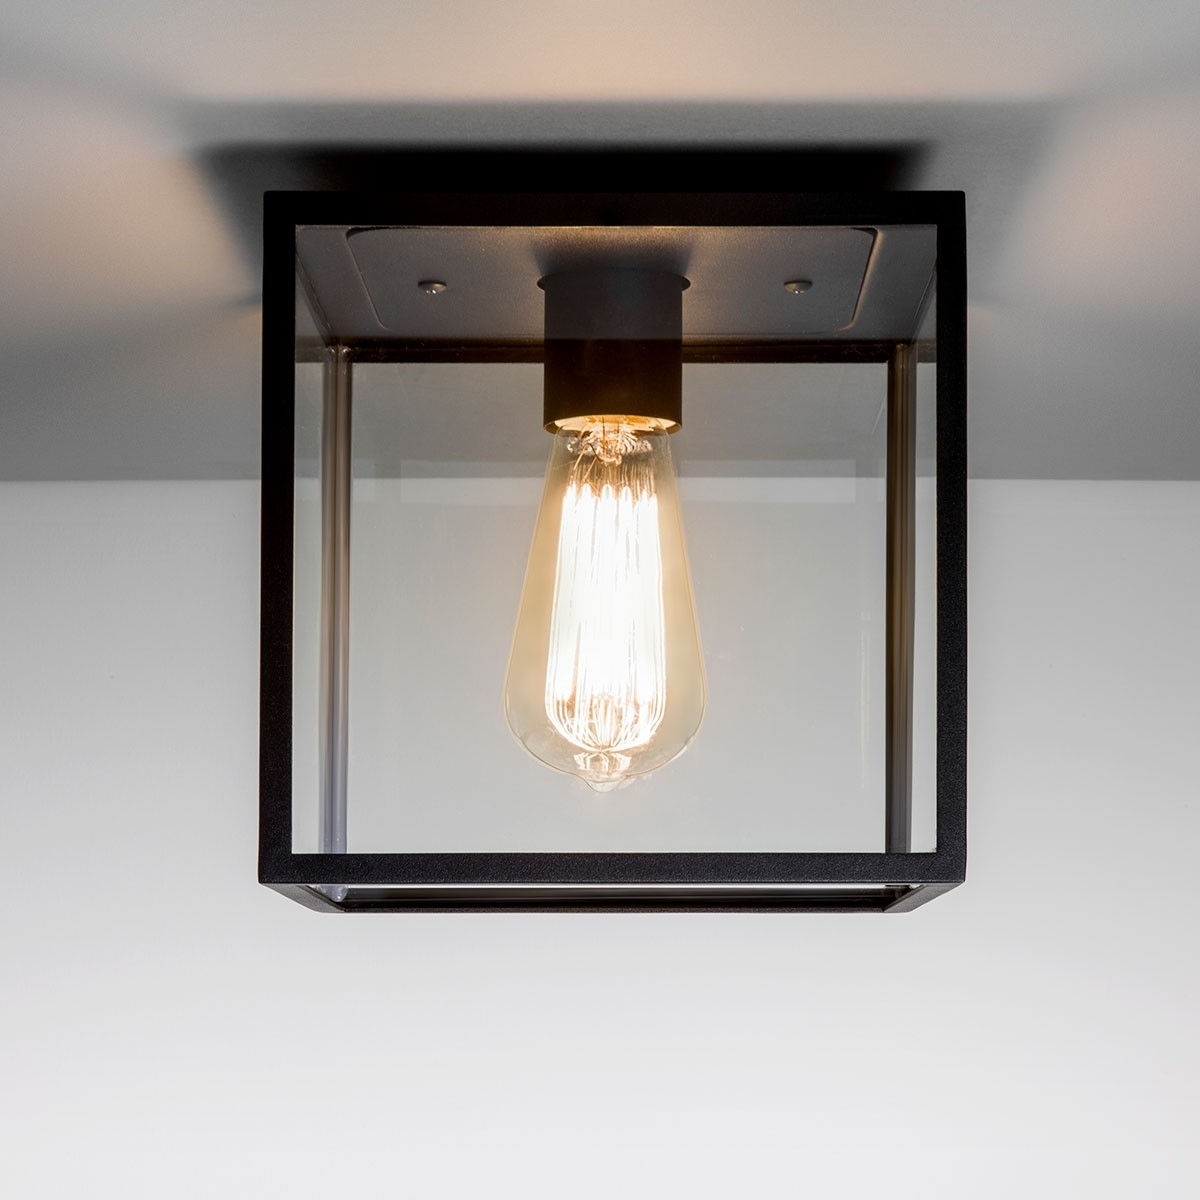 Furniture : Astro Box Black Outdoor Ceiling Light Electrical Intended For Outdoor Ceiling Spotlights (View 1 of 15)